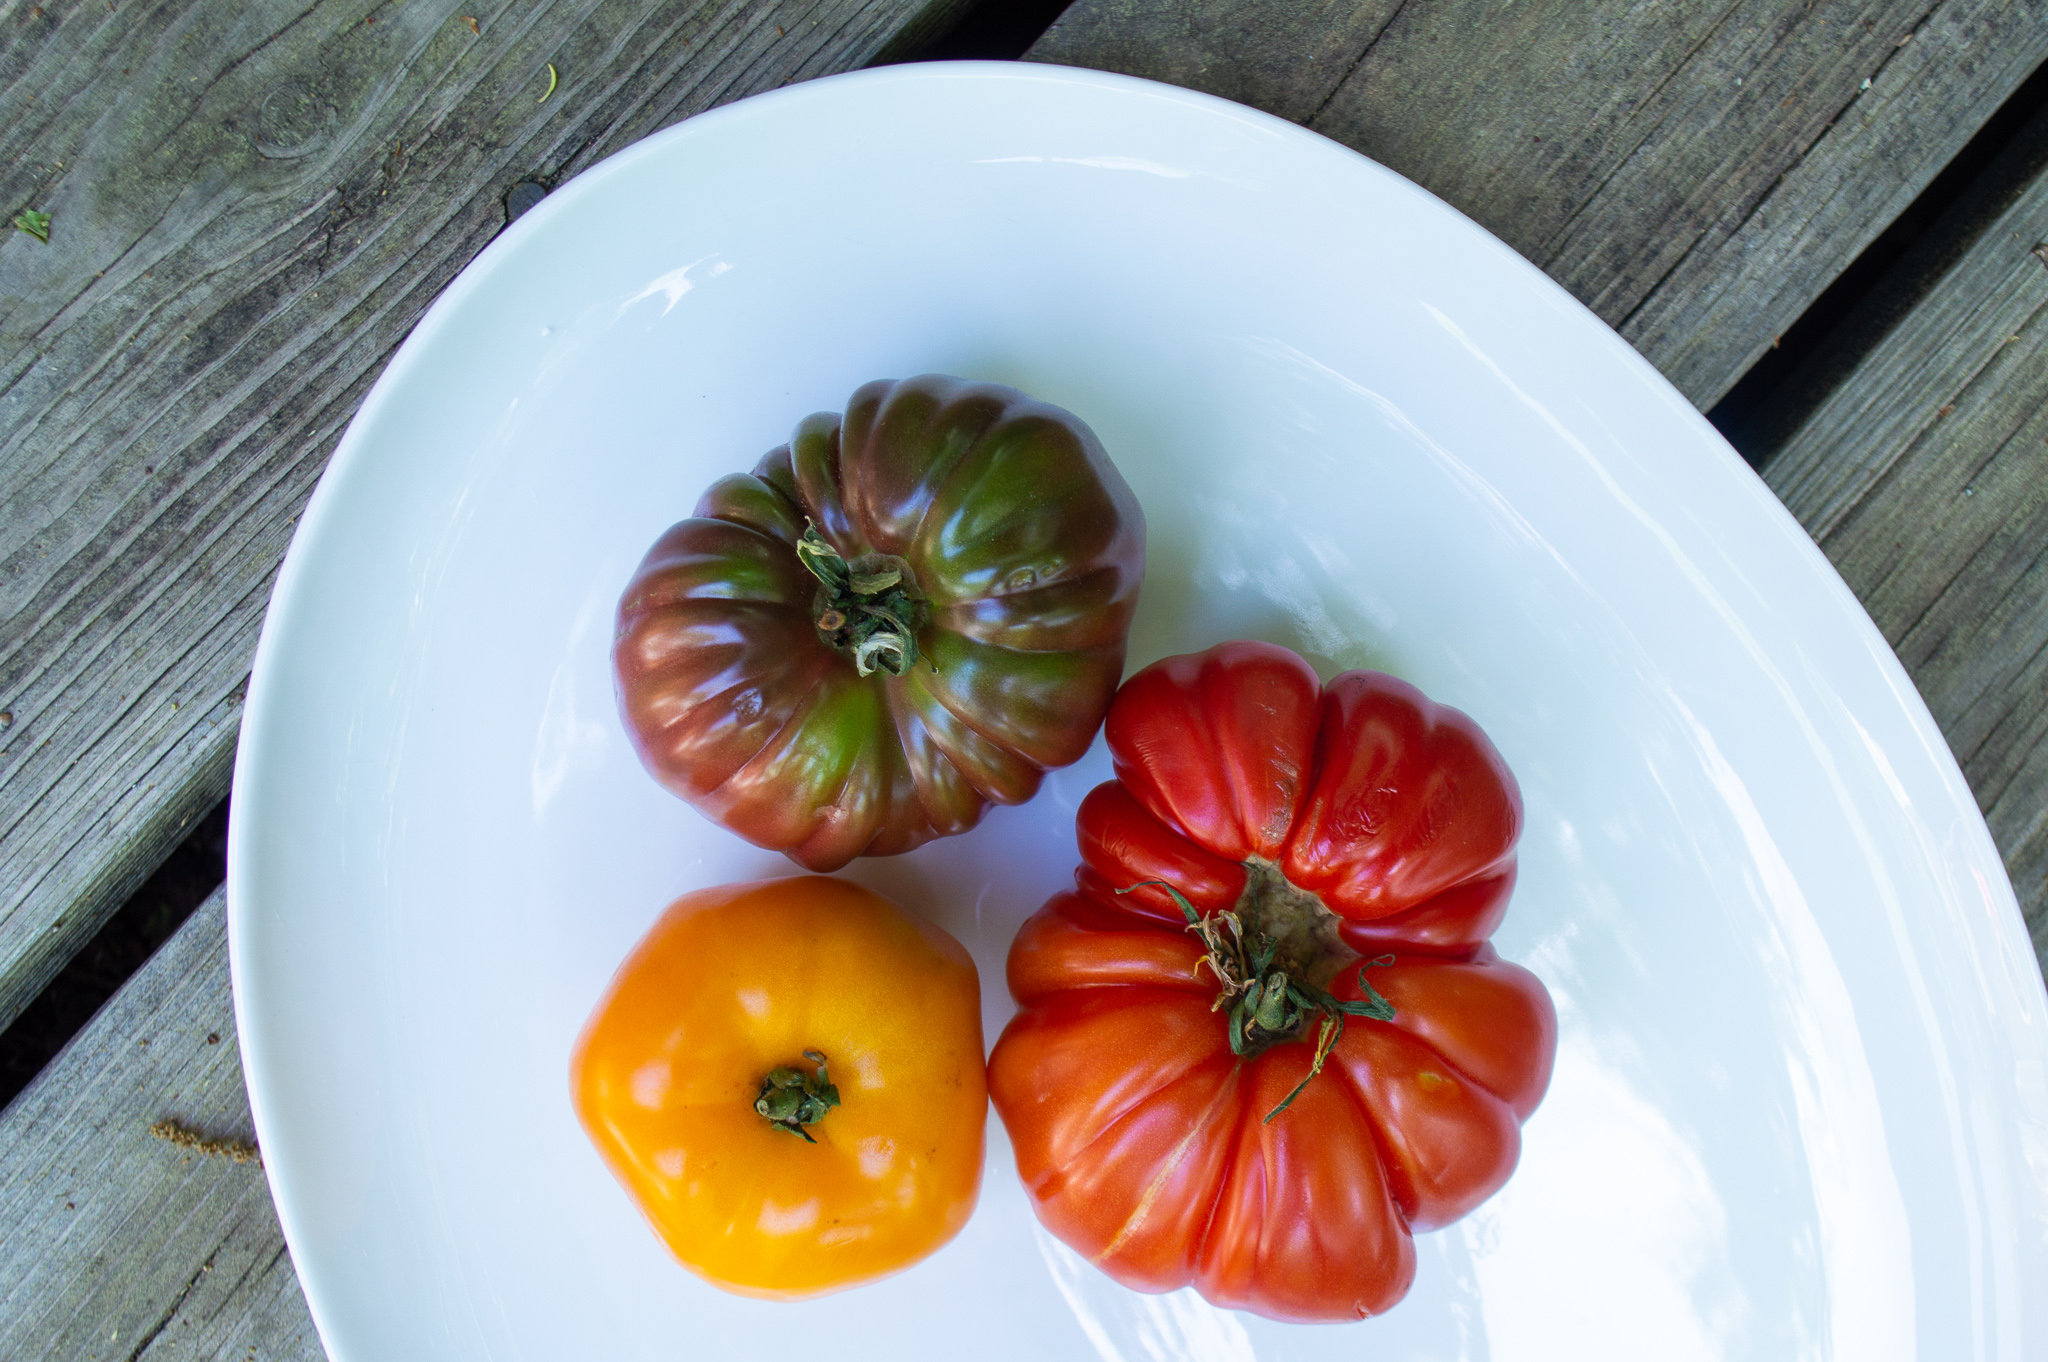 veggies that are actually fruits - Tomatoes, avocados, zucchini, peppers, squash, eggplant